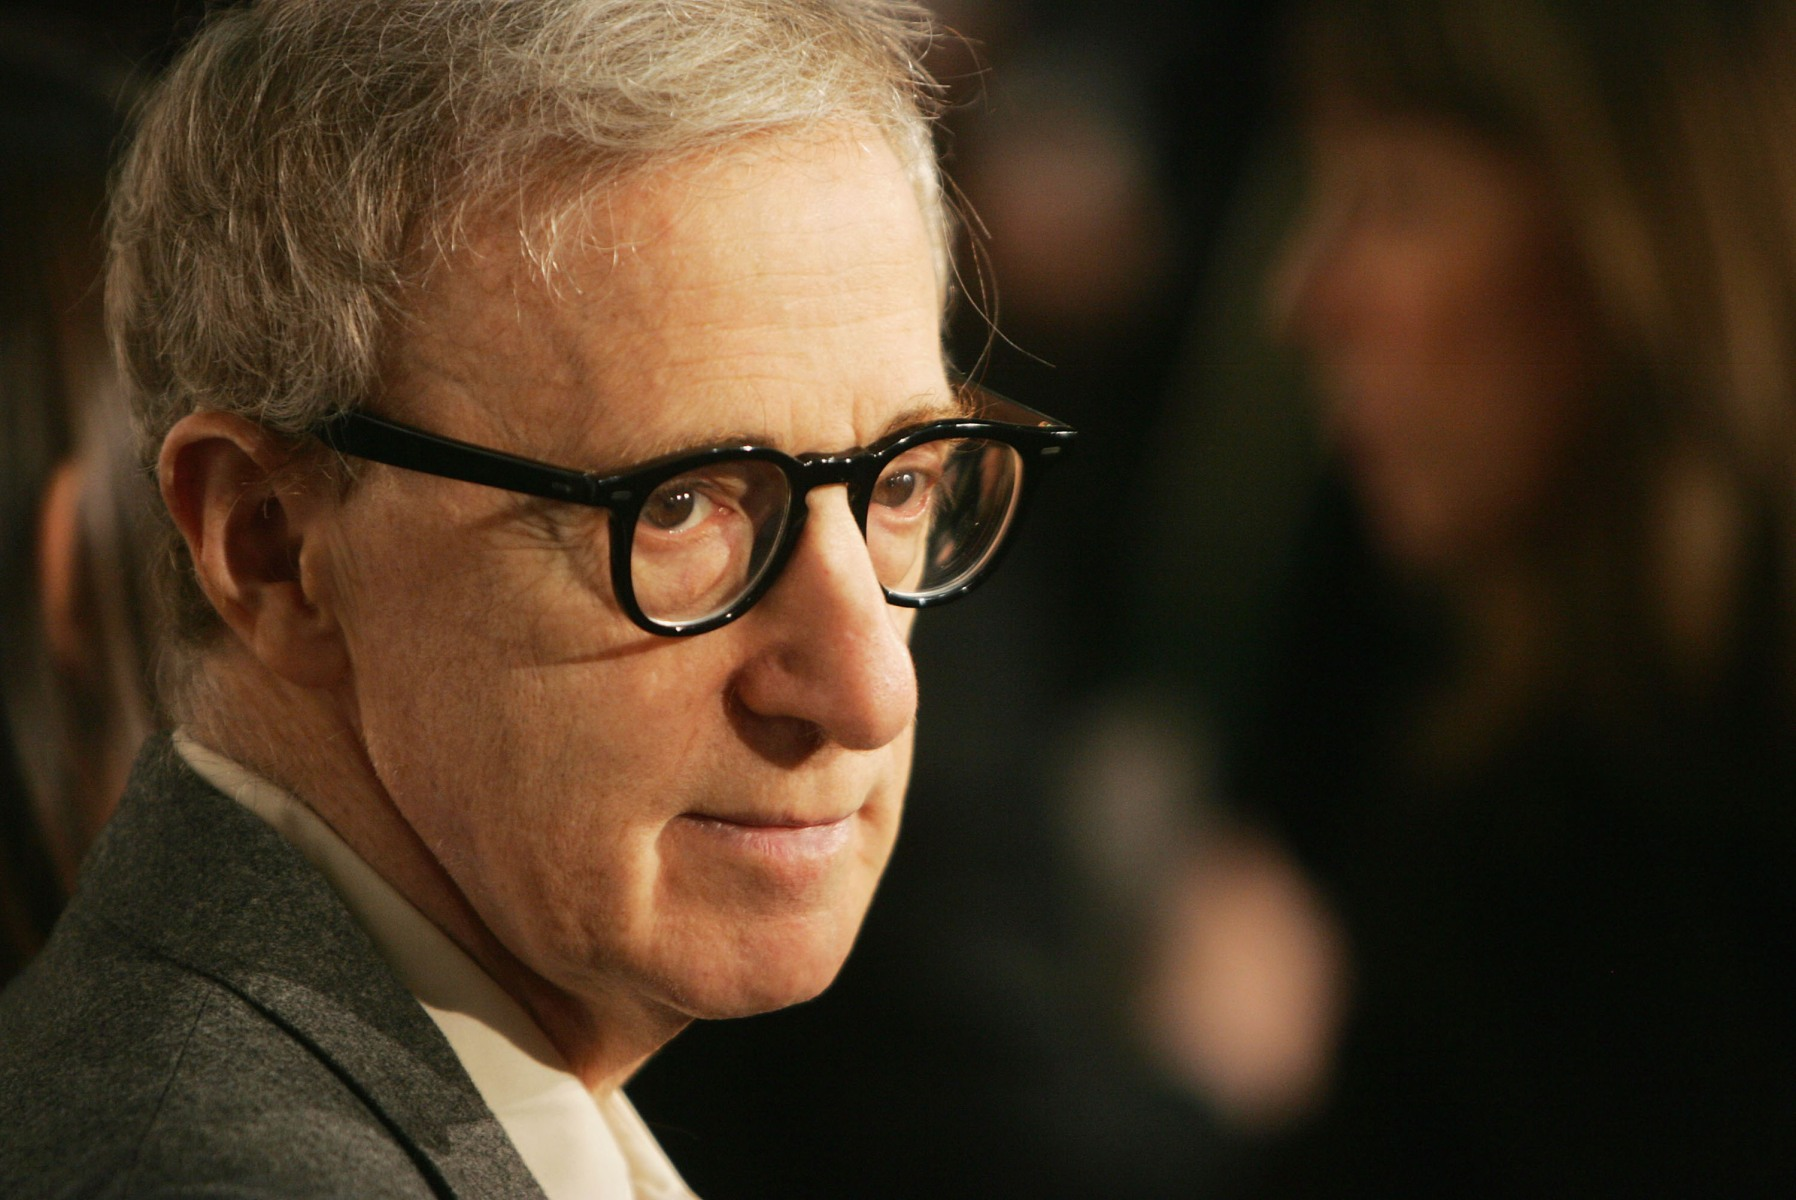 Woody Allen at a film premiere in 2005 (Photo by Kevin Winter/Getty Images)